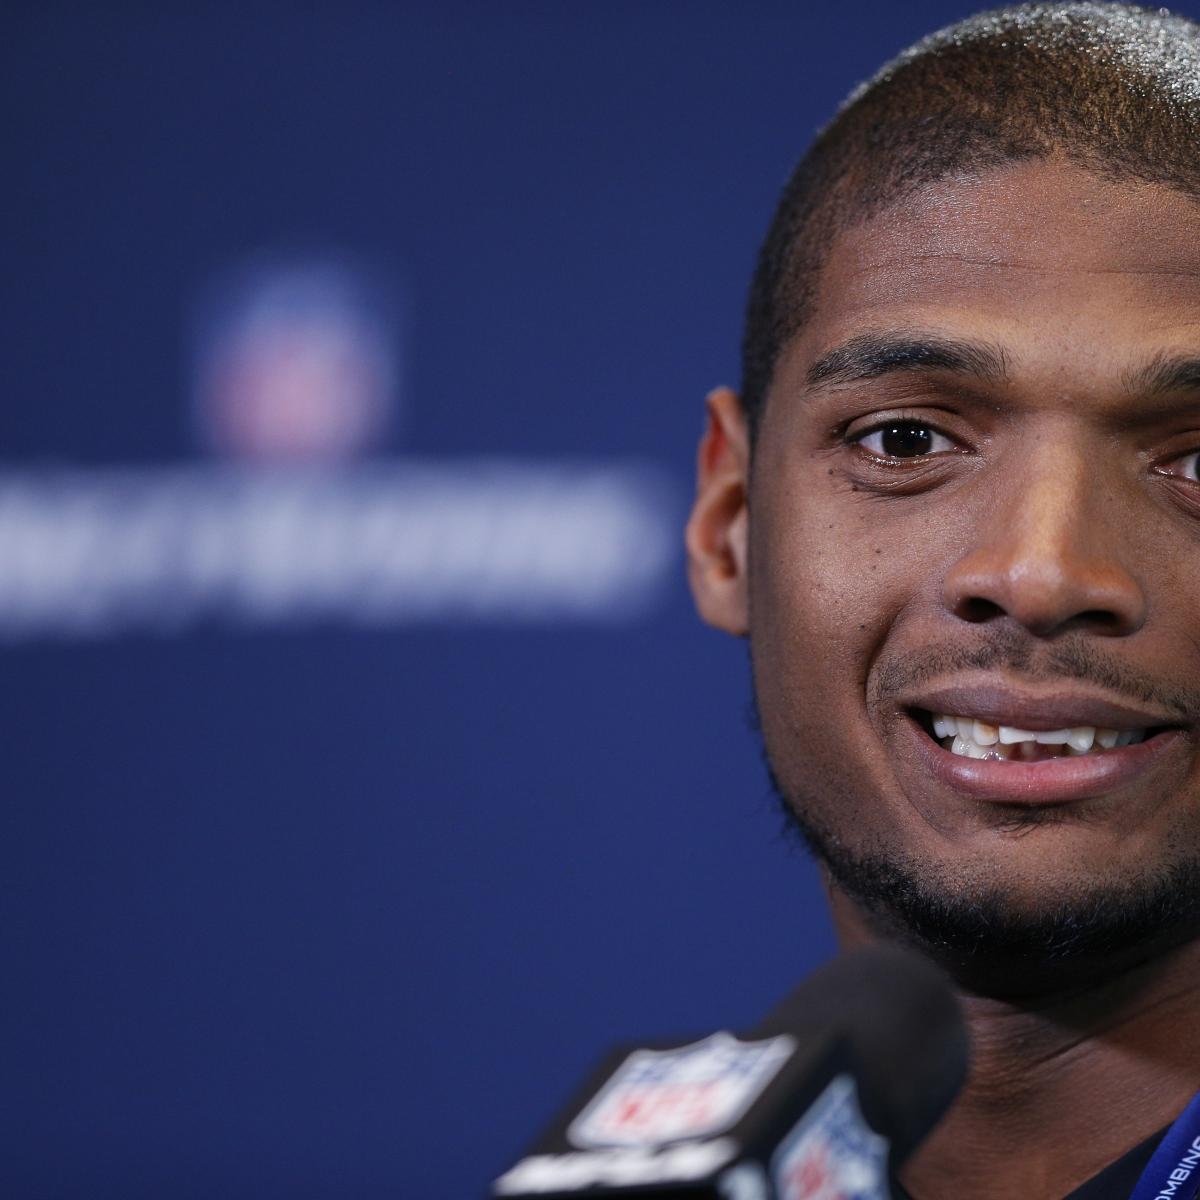 Michael Sam's Agent Speaks Out On Homophobic Reaction To